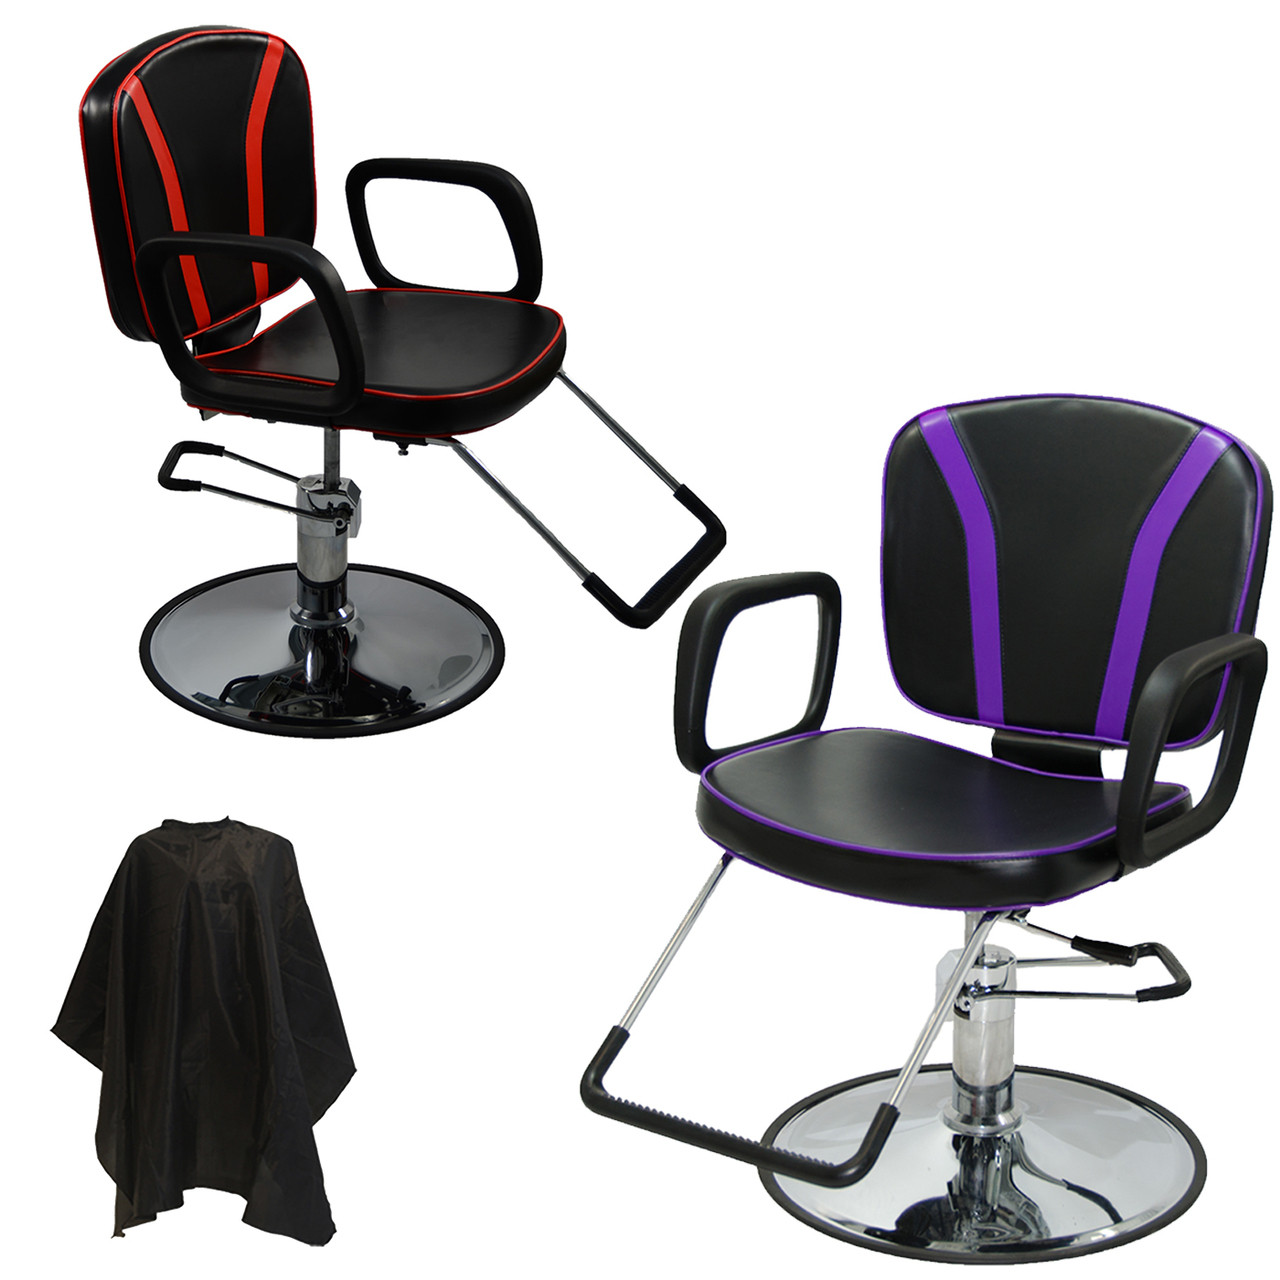 Image 1  sc 1 st  LCL Beauty & PRO-31109A Reclining Styling Chair - LCL Beauty